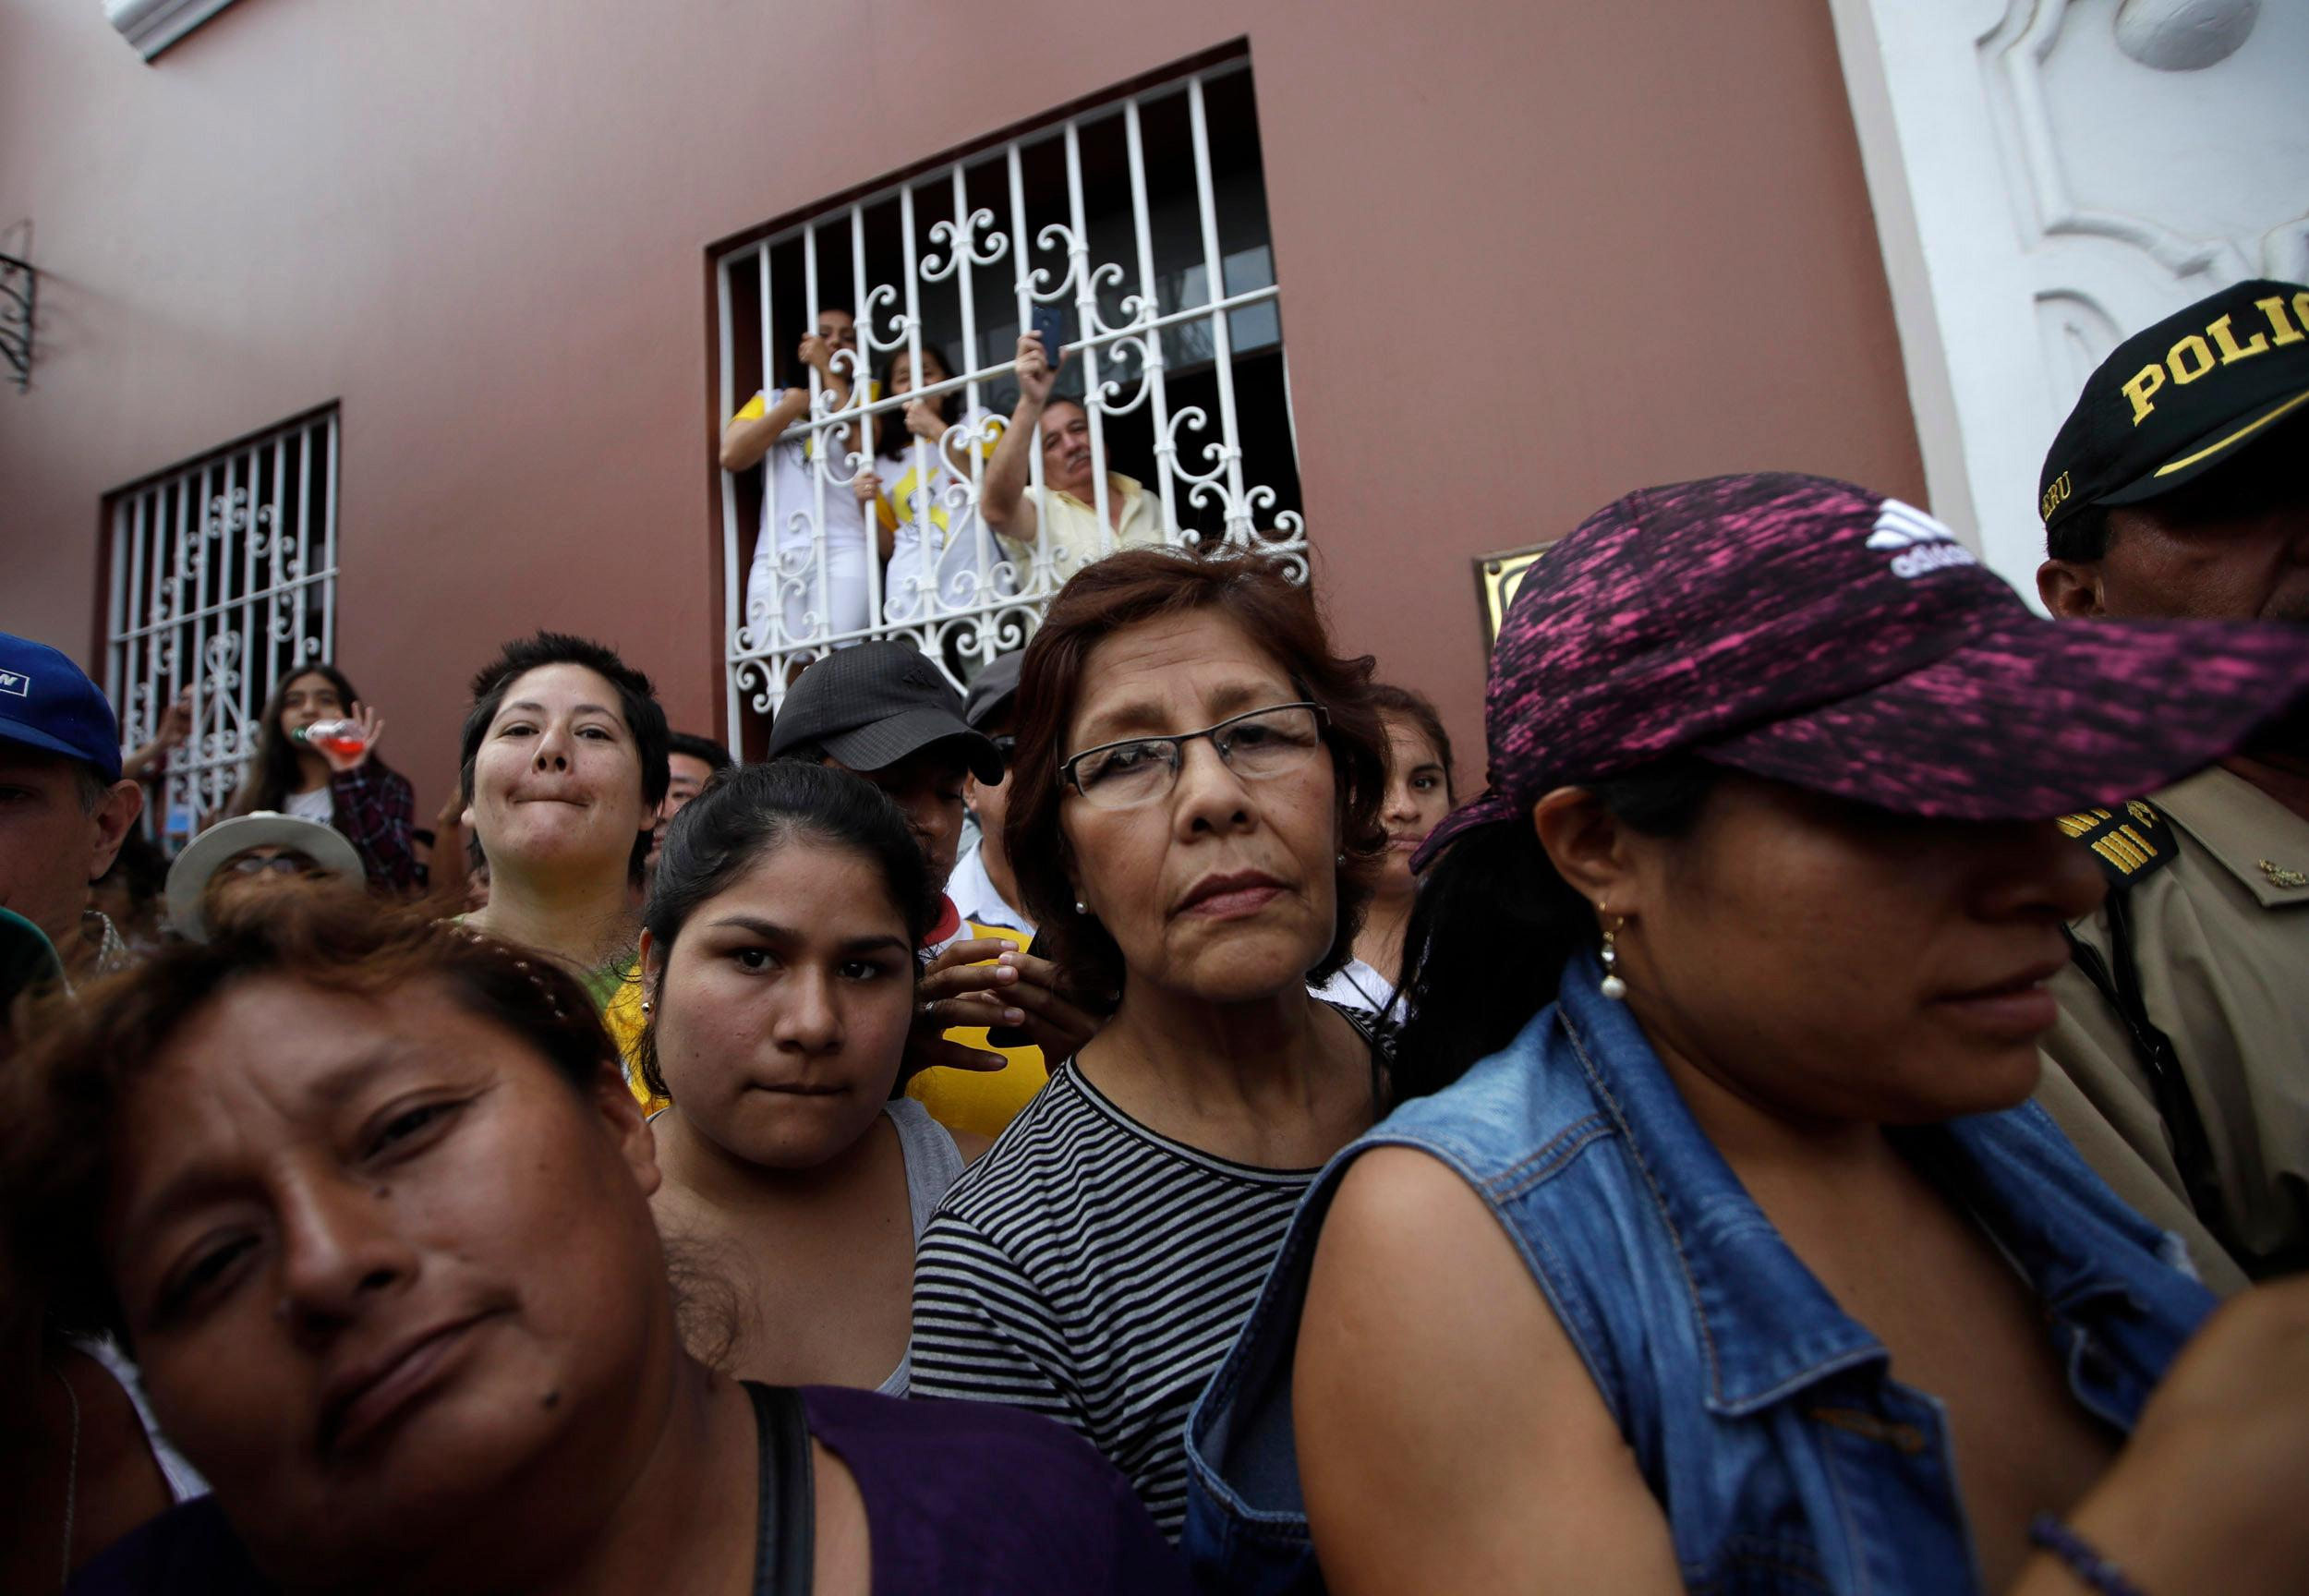 "A group of women try to get a glimpse of Pope Francis as he arrives for a Marian prayer celebrating the Virgin of La Puerta of Otuzco, at Plaza de Armas in Trujillo, Peru, Saturday, Jan. 20, 2018. Francis called women, mothers and grandmothers the guiding force for families. But he said women are nevertheless victims of ""femicide and many situations of violence that are kept quiet behind so many walls."" (AP Photo/Alessandra Tarantino)"